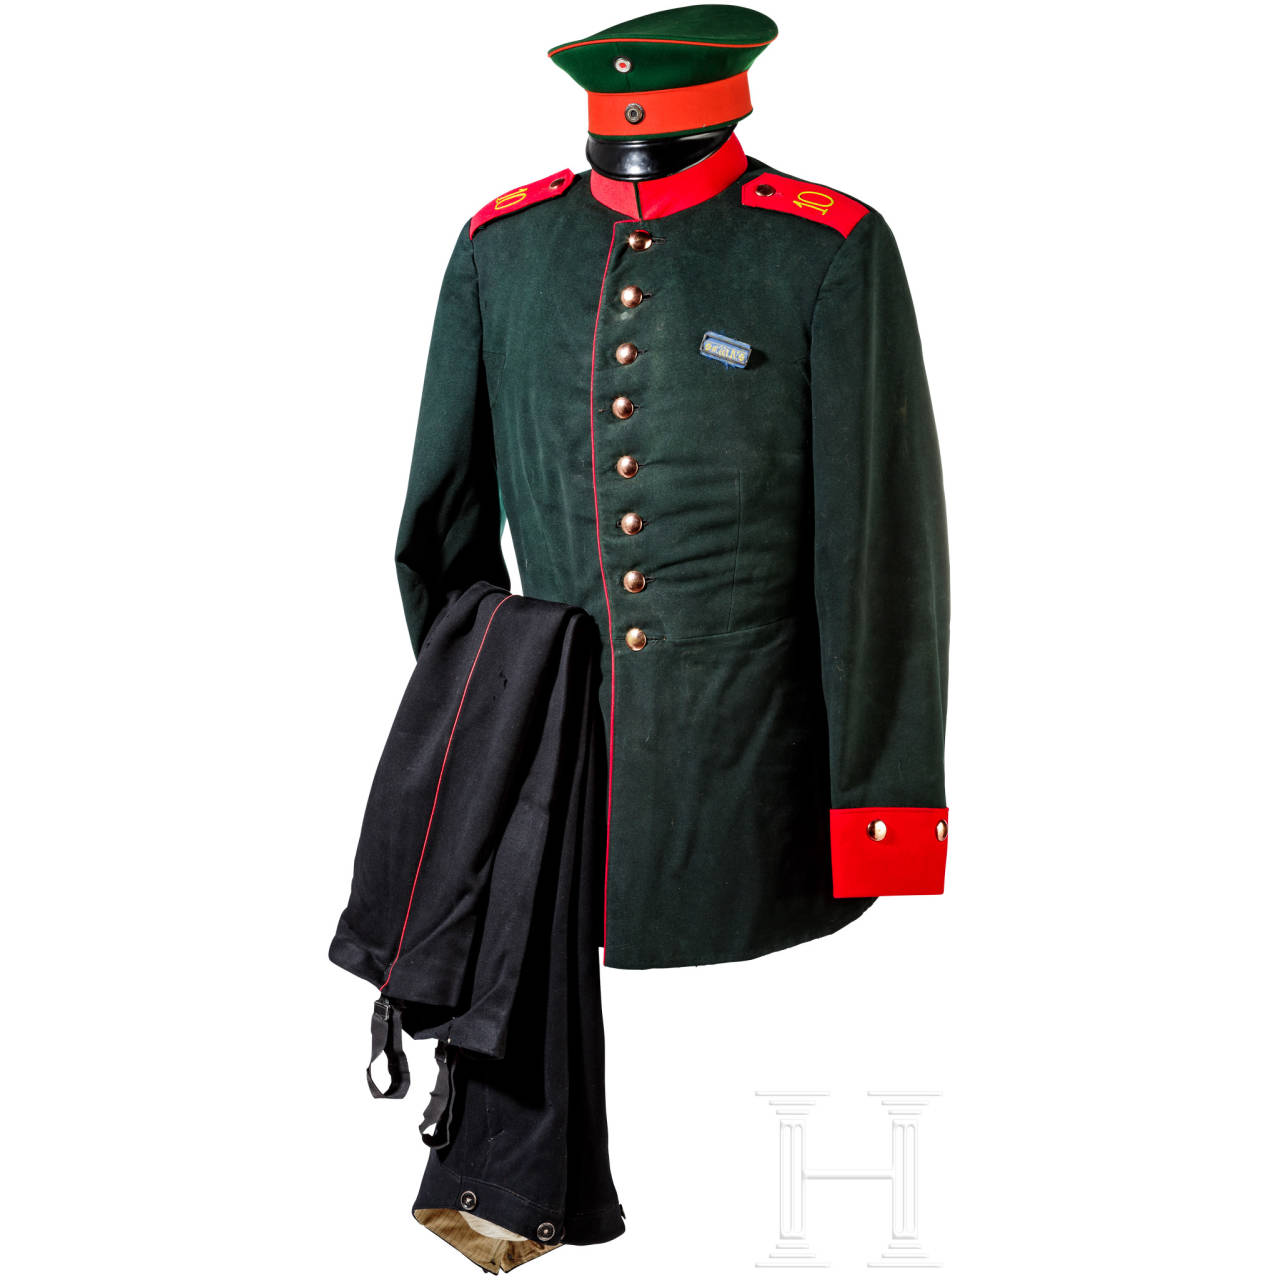 Uniform parts of the Hanoverian Hunter Battalion No. 10 and a knapsack